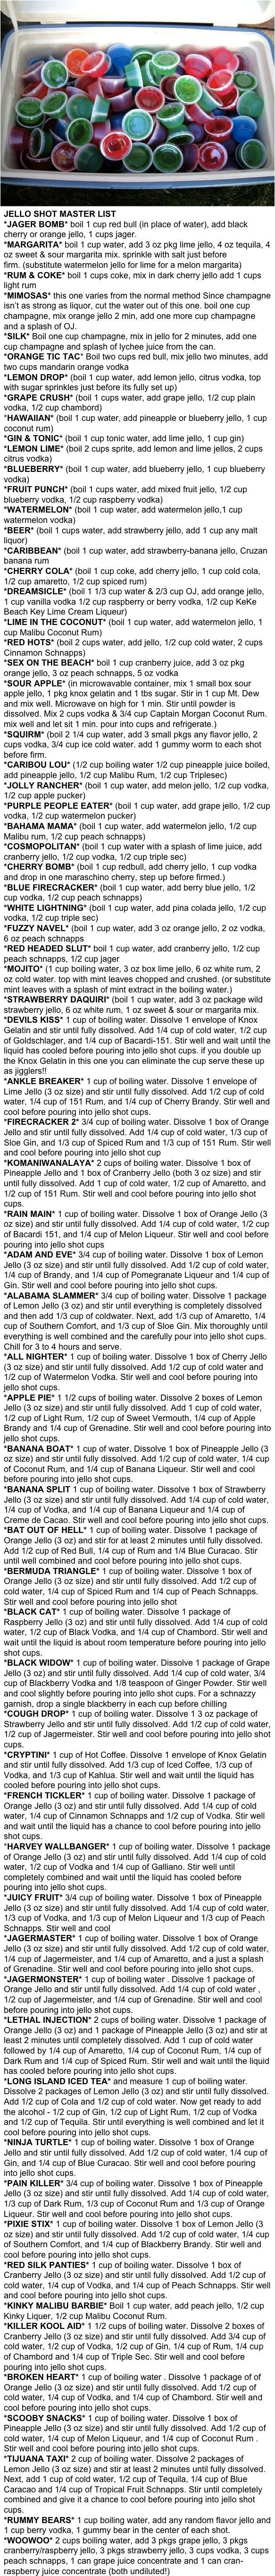 Jello Shots Master List. #jello #shots